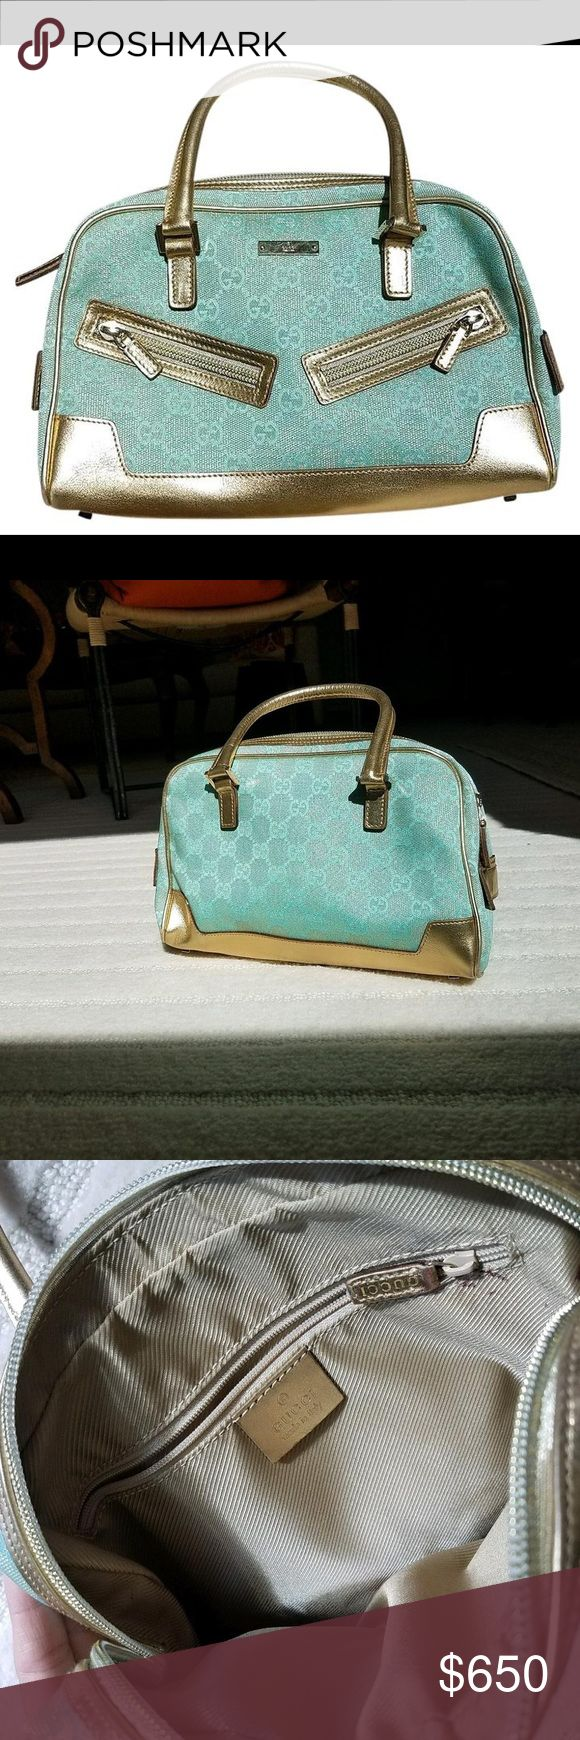 """Gucci Vintage Powder Blue and Gold Satchel BEAUTIFUL!l Powder Blue and Gold Gucci satchel. Canvas and Leather material, Gold Metallic detailing, zippers, Gucci GG logo. Impeccable exterior, looks BRAND NEW, used only twice. Slight lipstick mark on interior lining. What a Gem! L10""""xW3""""xH6"""" Gucci Bags Satchels"""